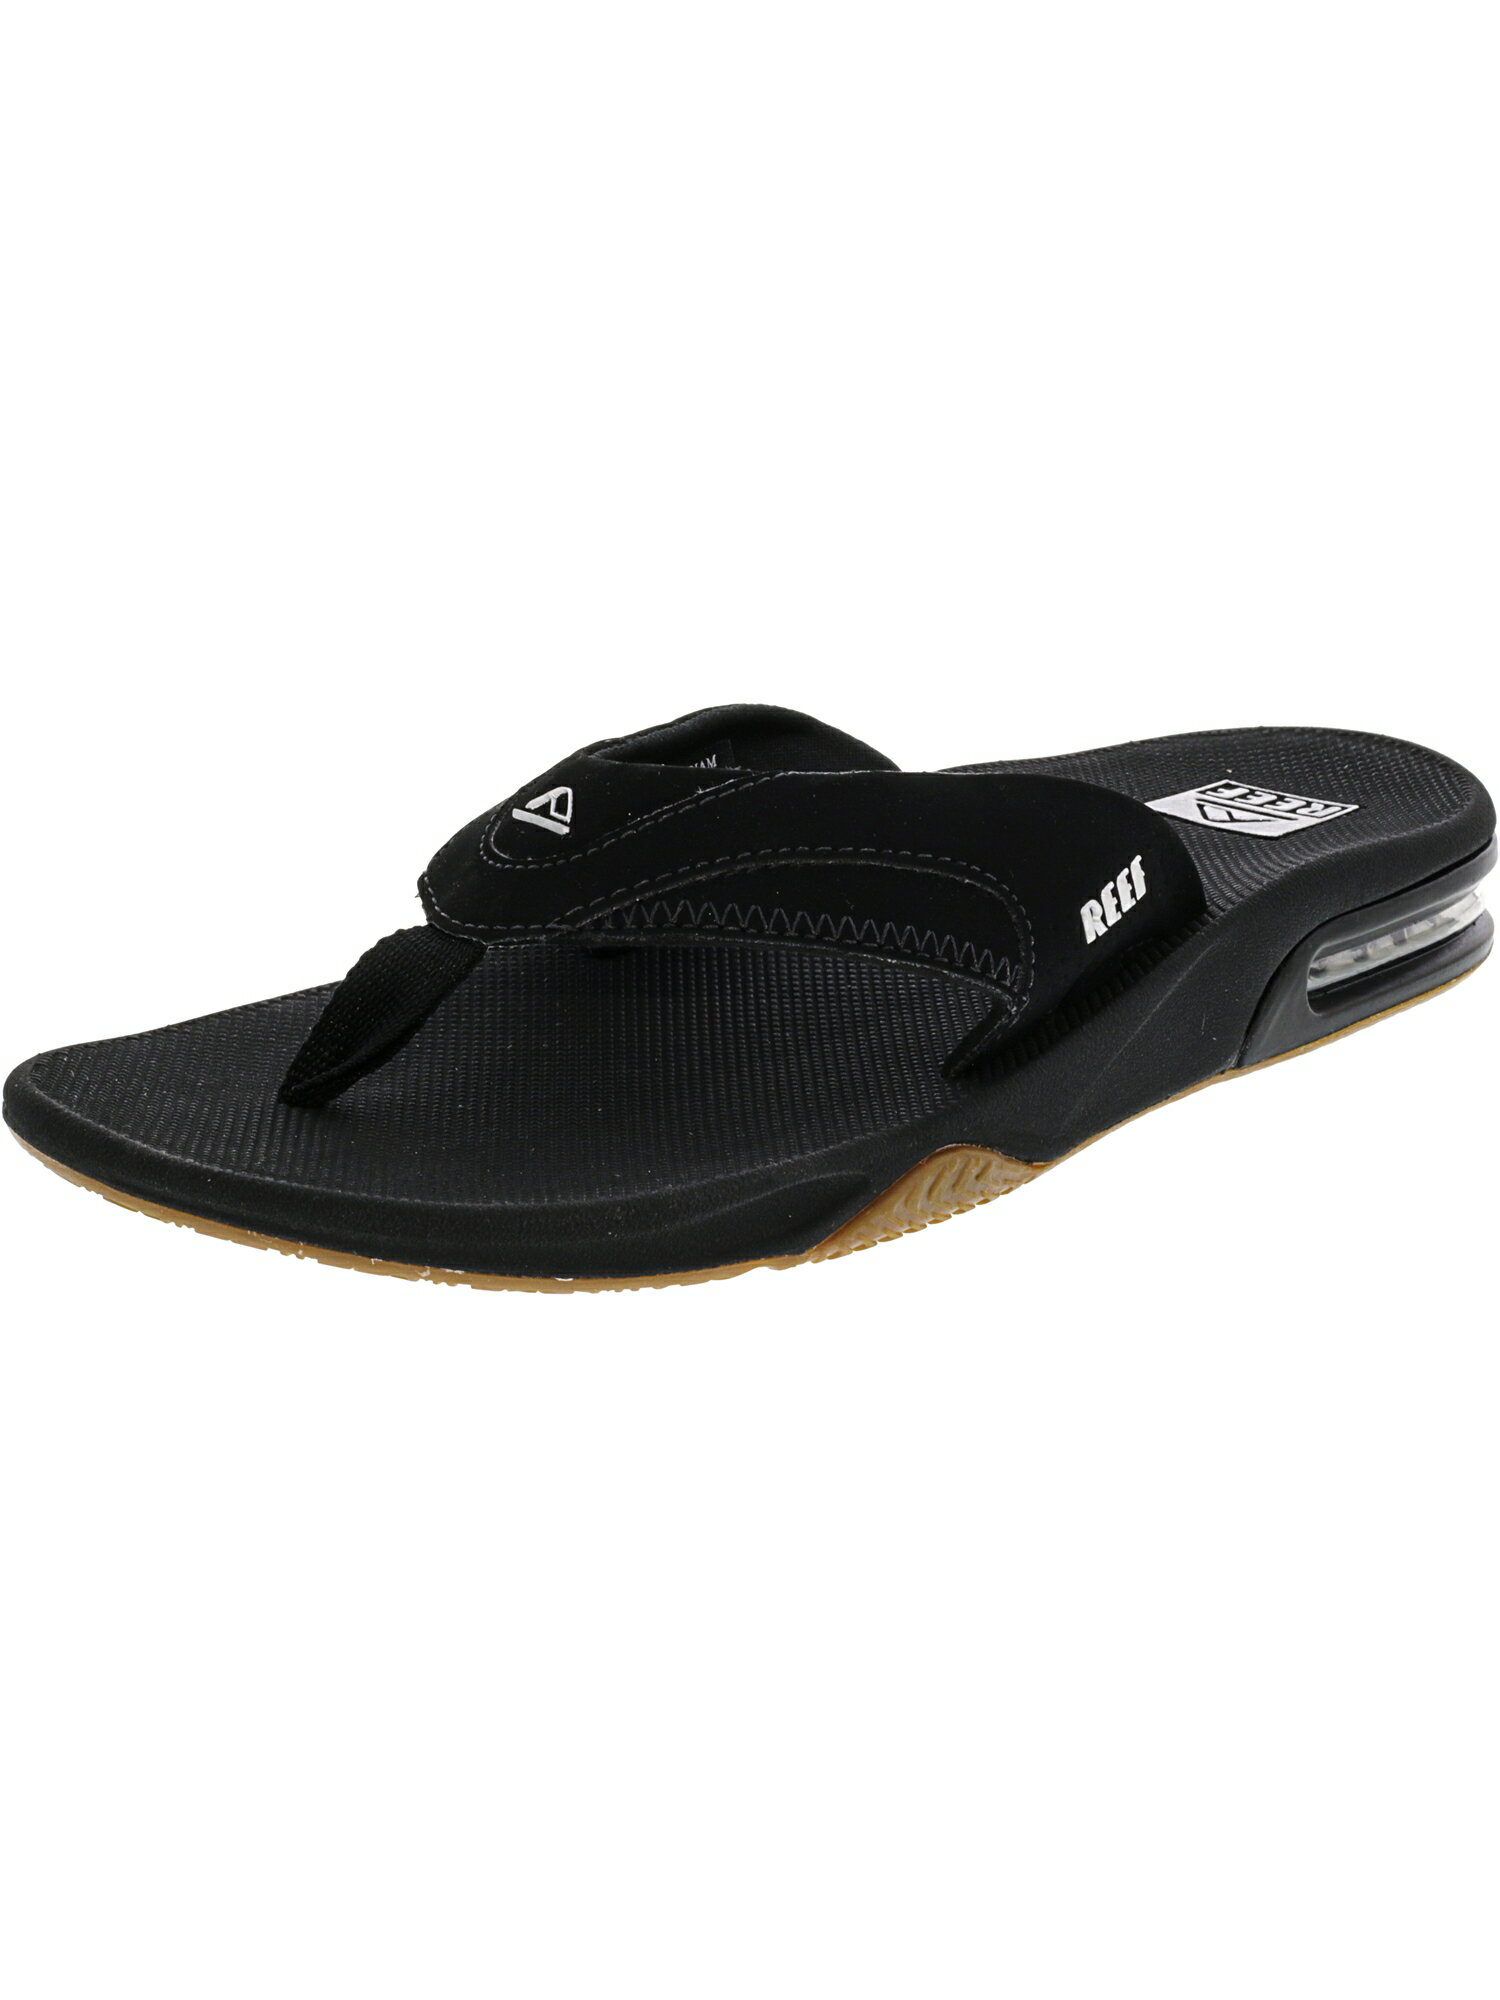 467c214a223 AreaTrend  Reef Men s Fanning Black   Silver Low Top Rubber Sandal ...